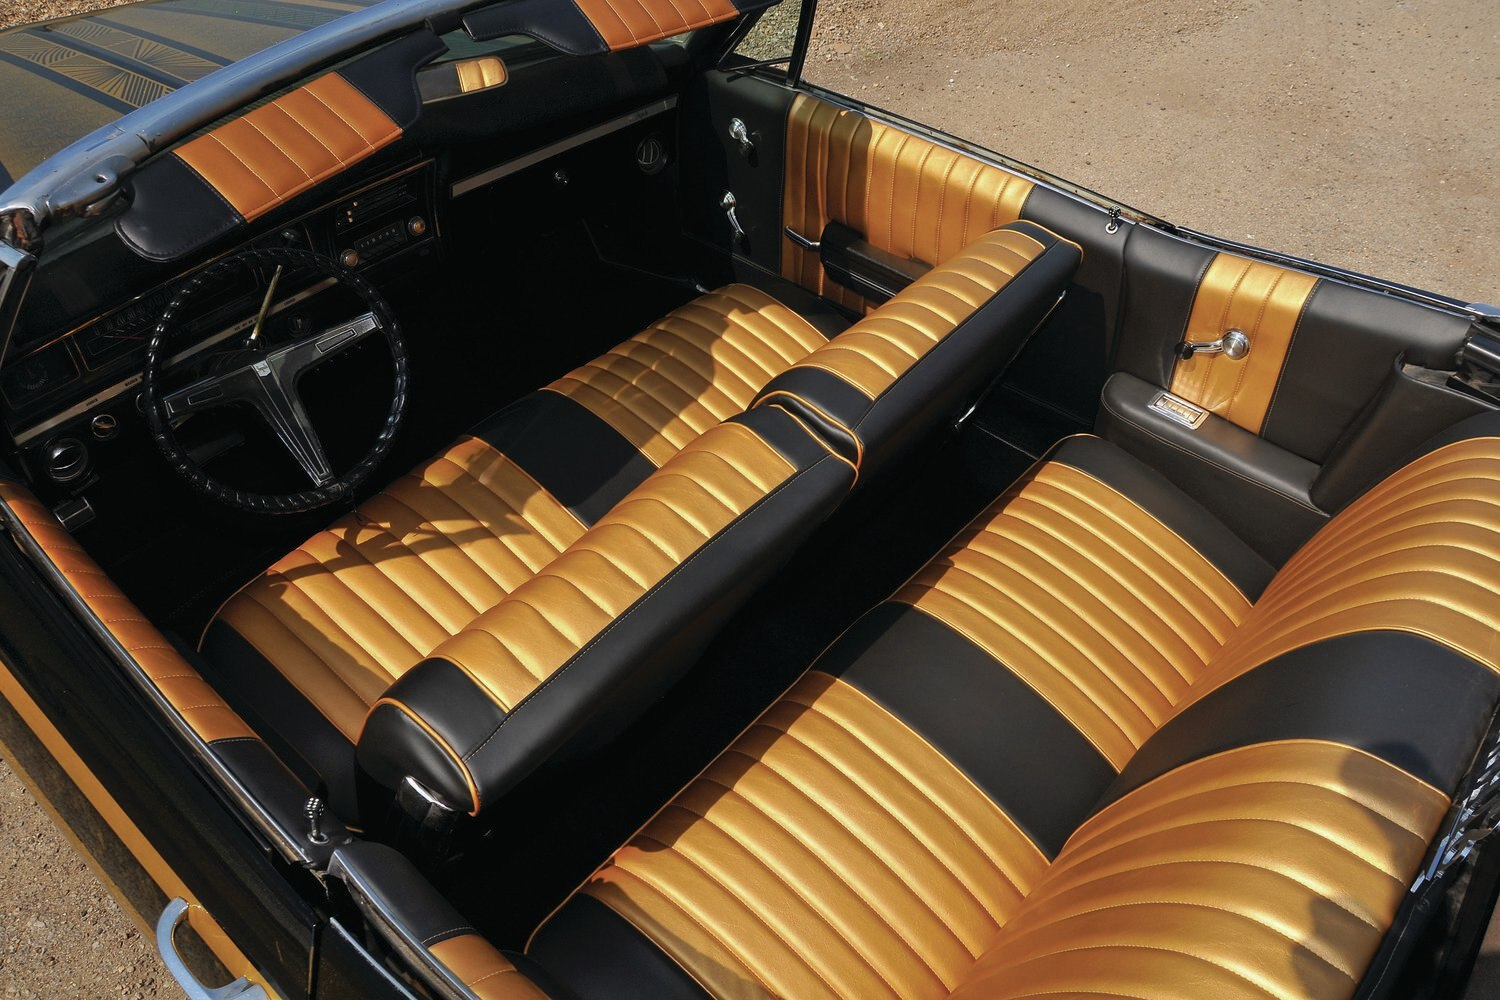 1968 chevrolet impala lethal weapon. Black Bedroom Furniture Sets. Home Design Ideas